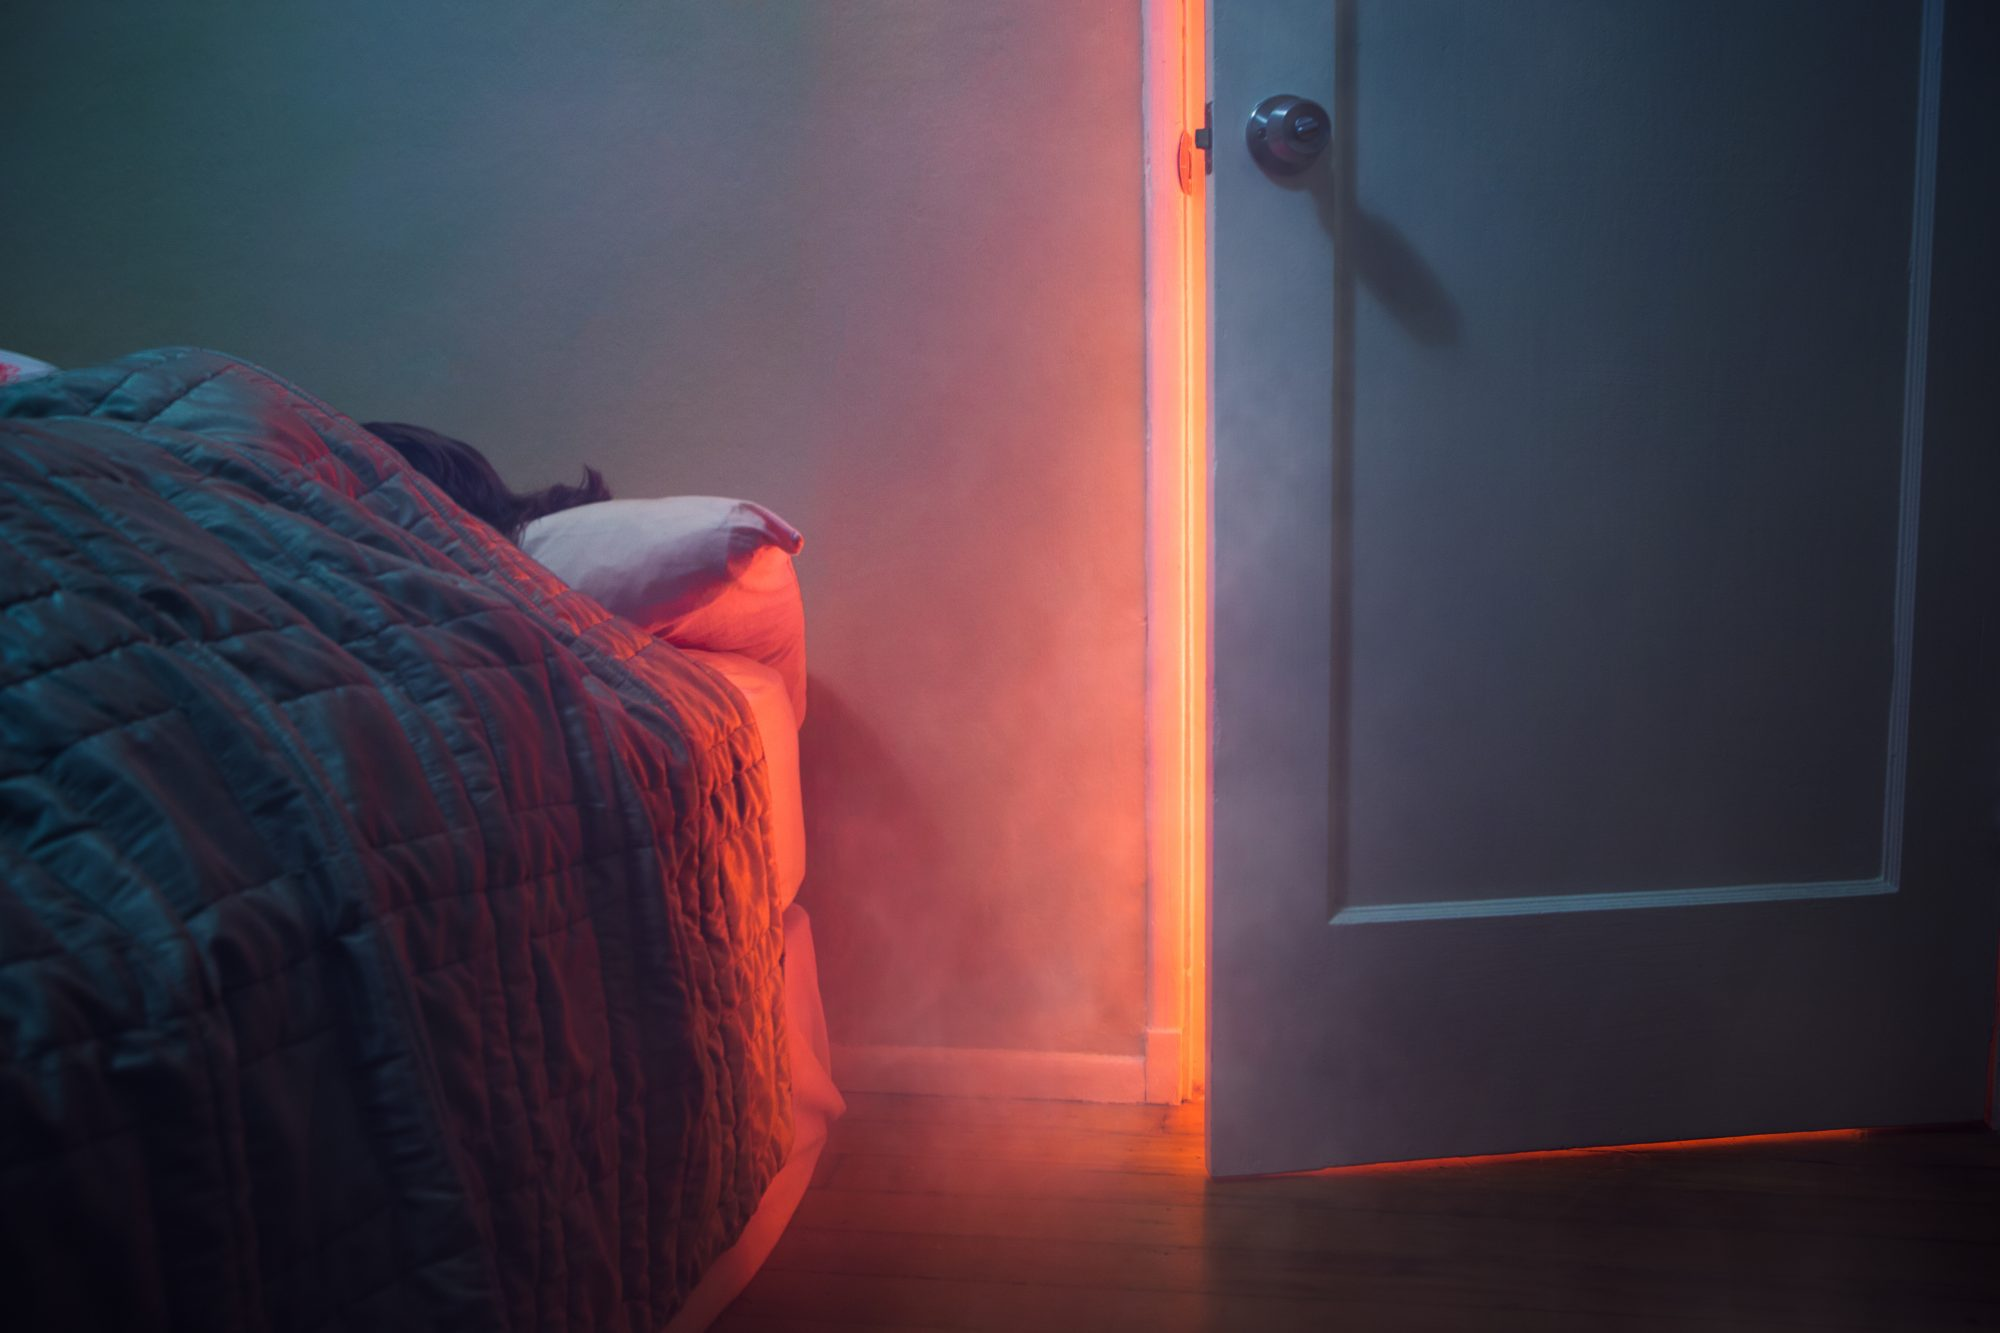 Fire Visible Through Bedroom Door